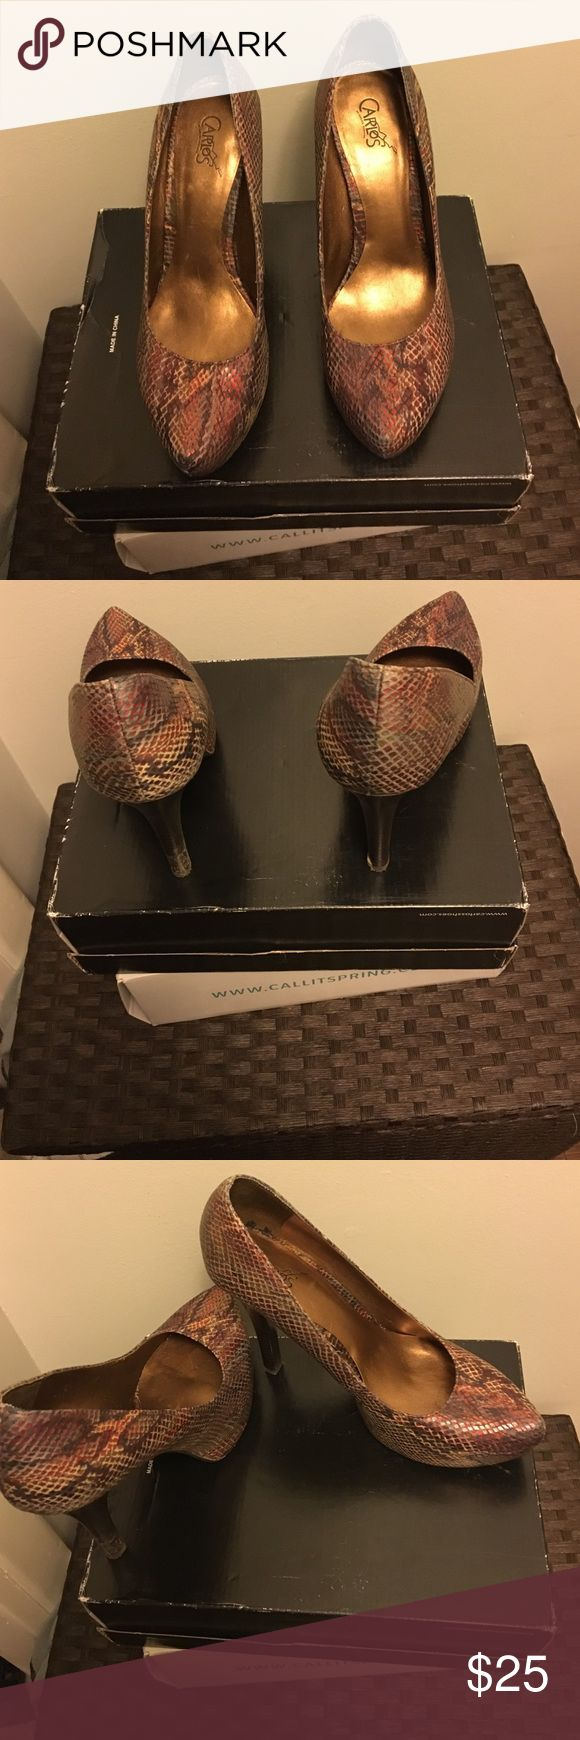 Red gold multi Red and gold python print pump. Worn once Carlos Santana Shoes Heels